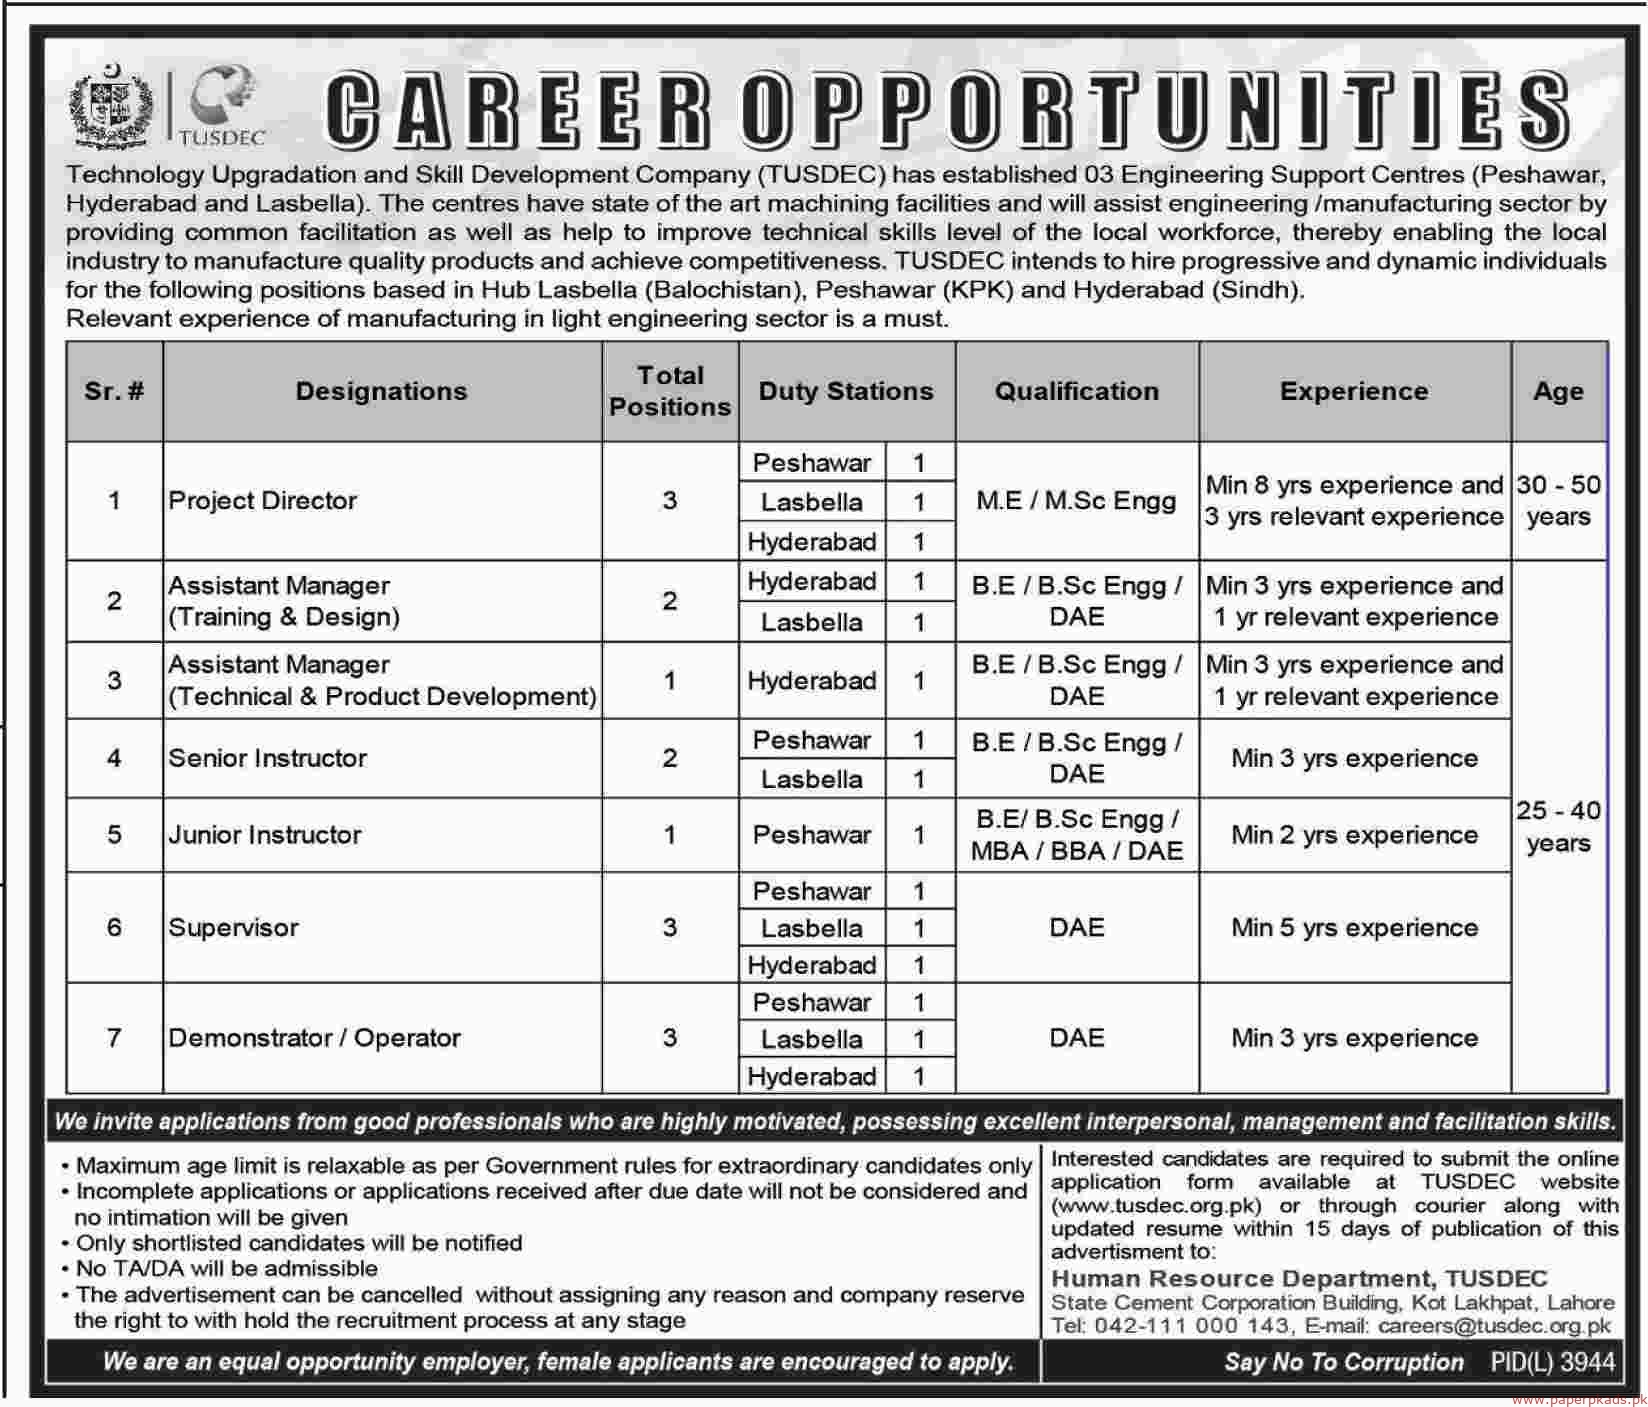 Technology Upgradation and Skill Development Company Jobs 2019 Latest